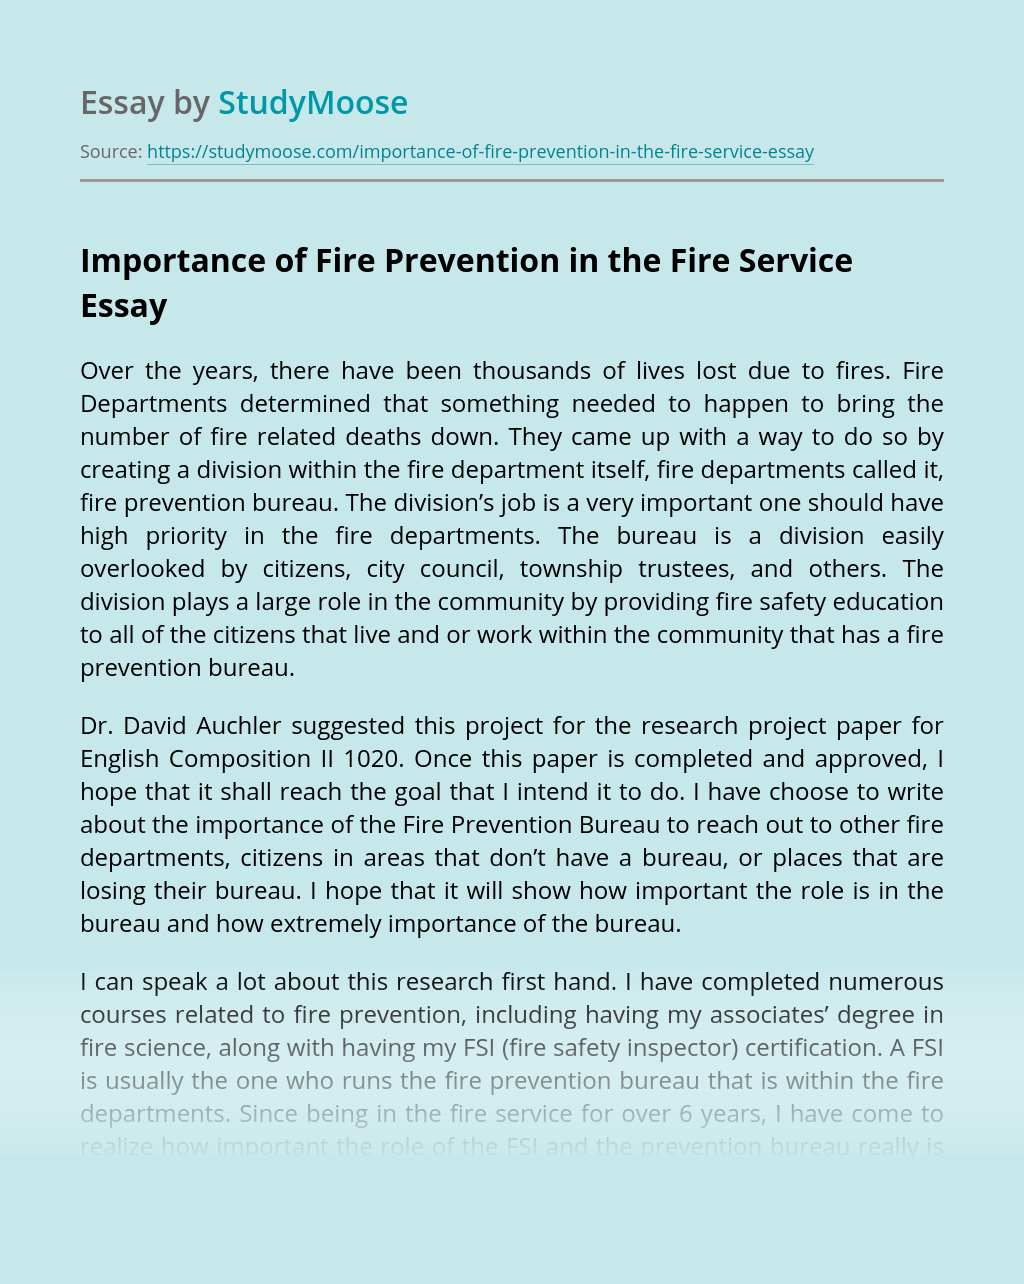 Importance of Fire Prevention in the Fire Service